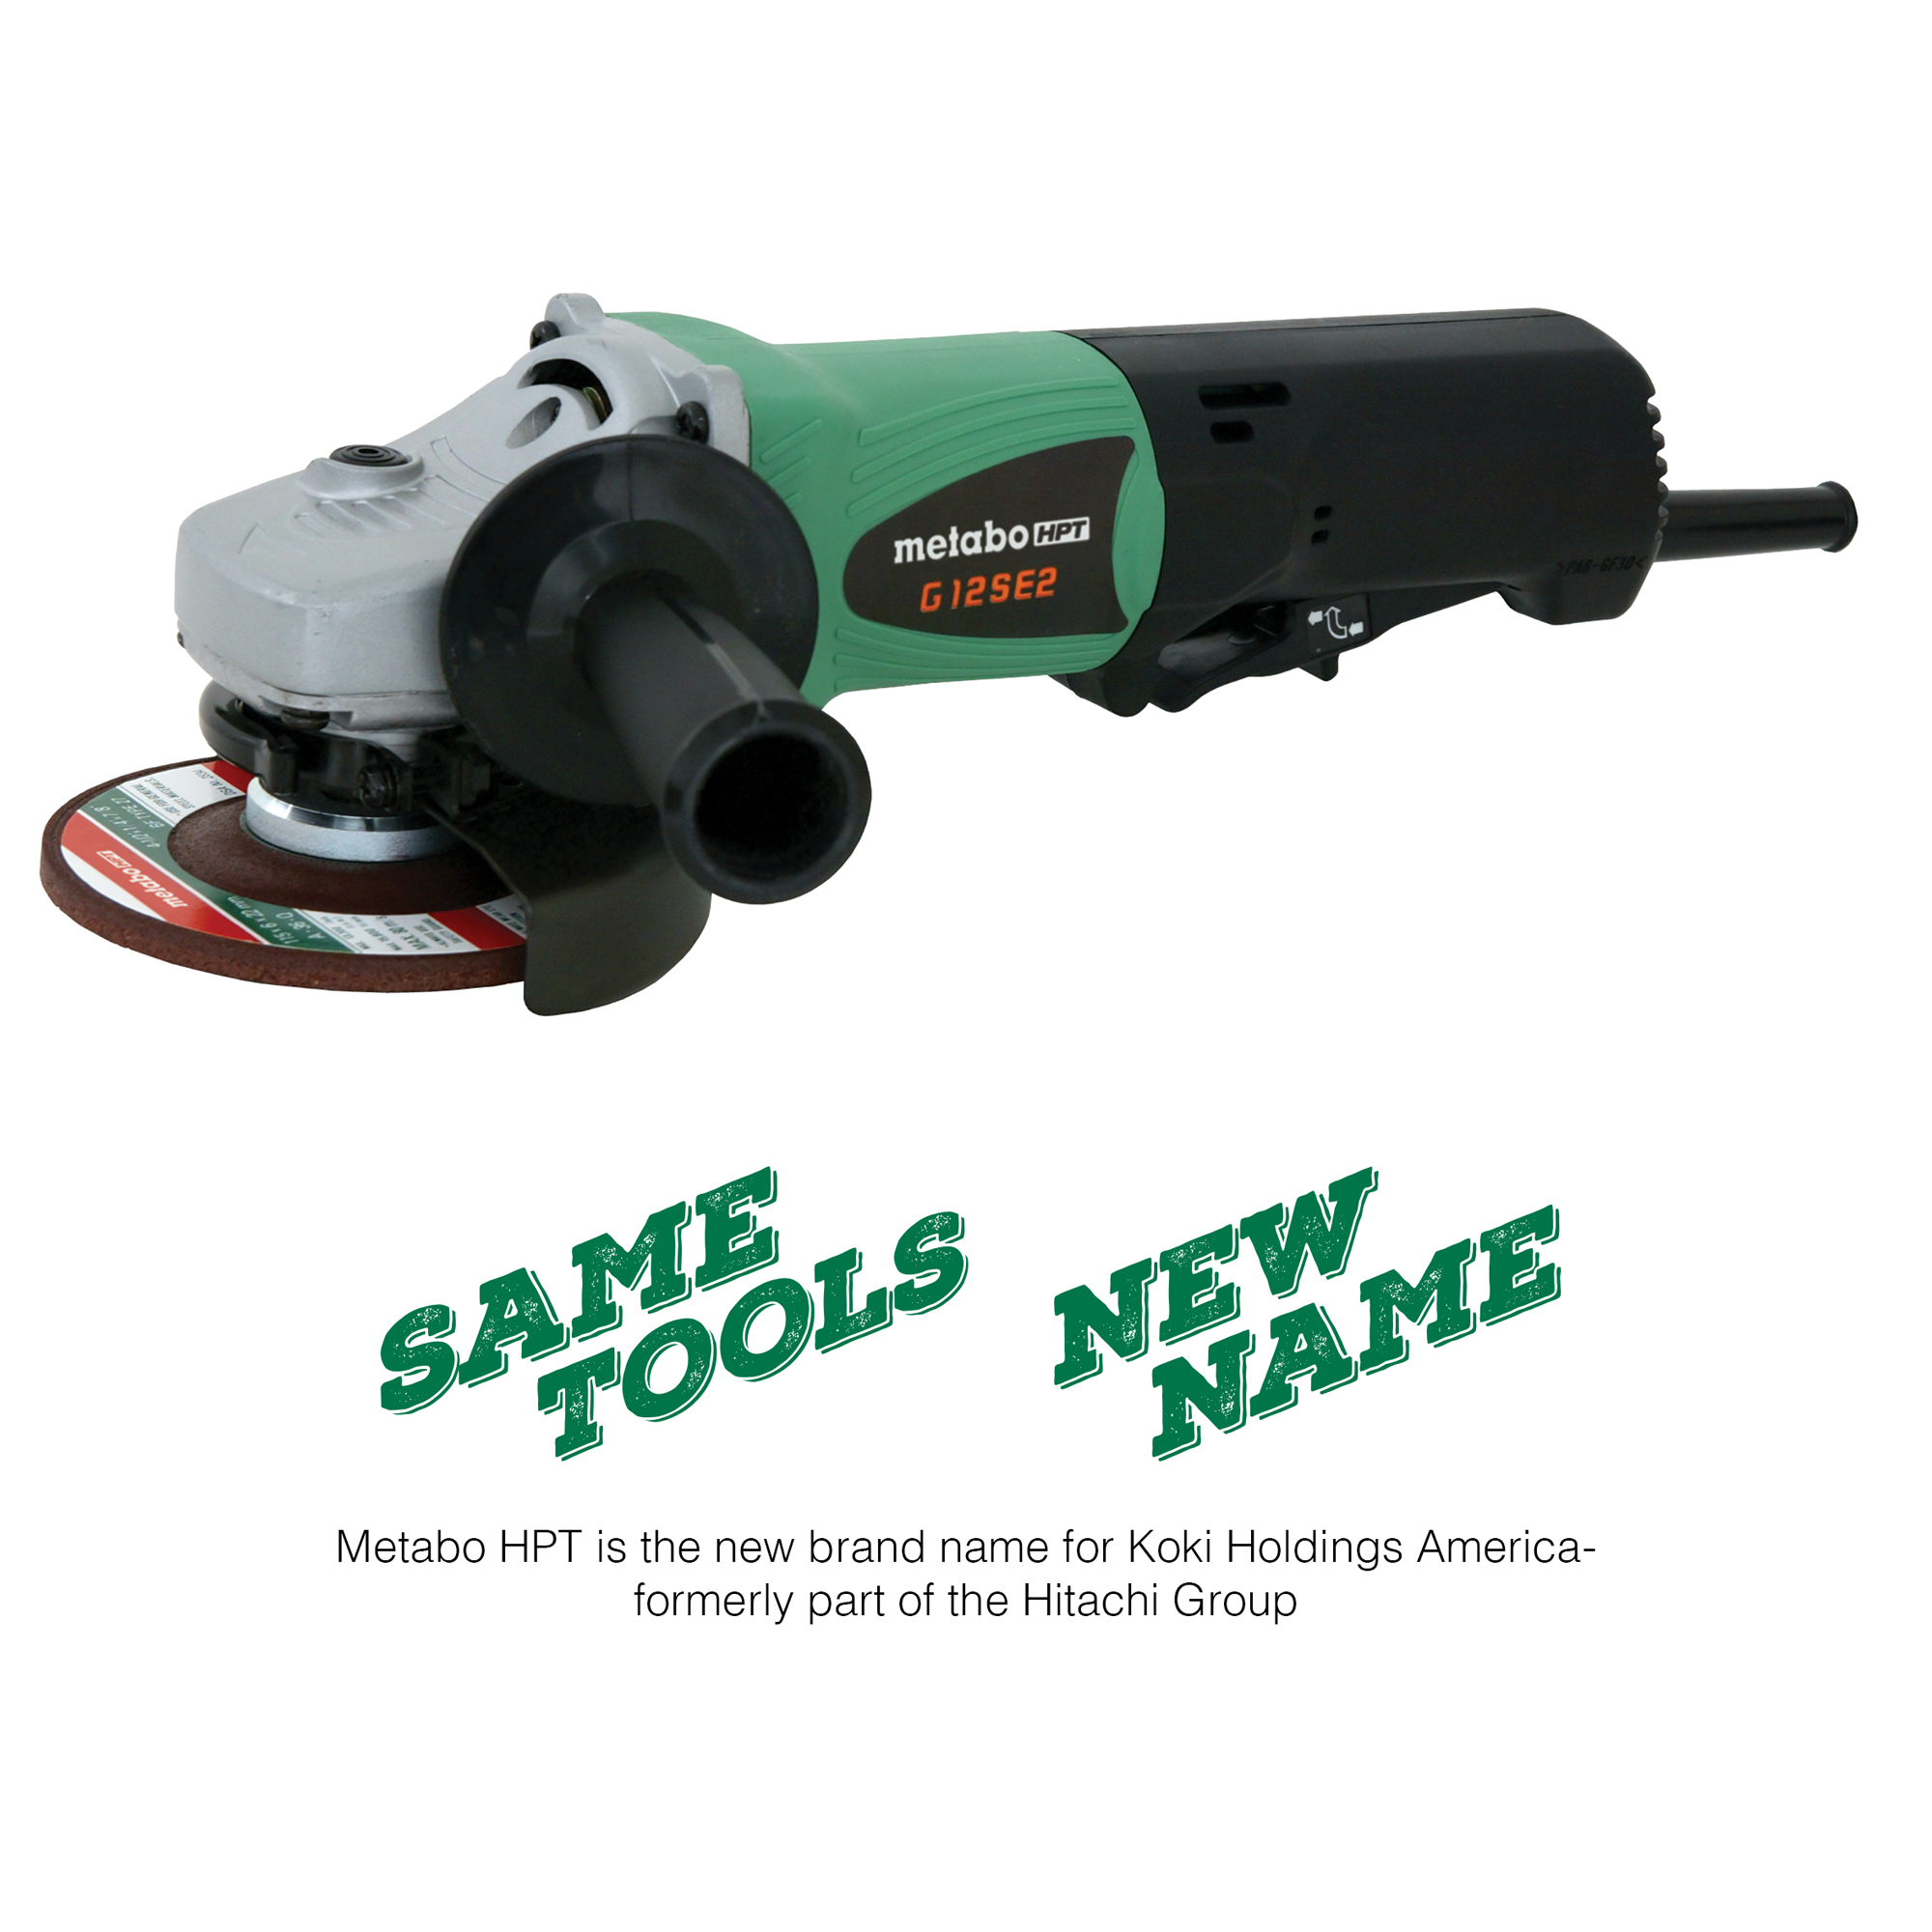 "Metabo HPT 9.5-Amp, AC/DC 4-1/2"" Non-Locking Paddle Switch Angle Grinder"